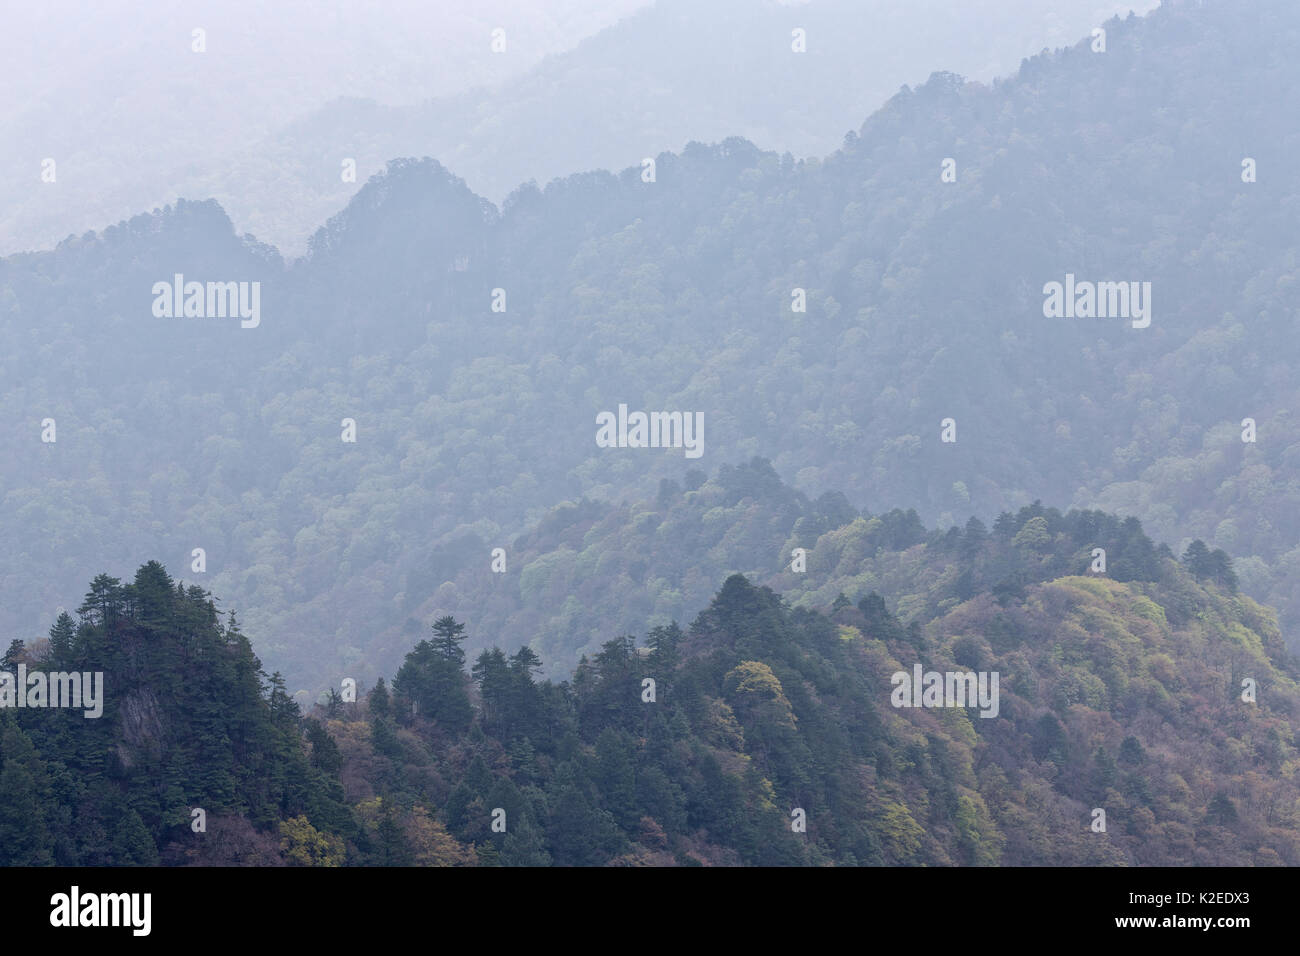 Mountains in Tangjiahe National Nature Reserve, Qingchuan County, Sichuan province, China. - Stock Image